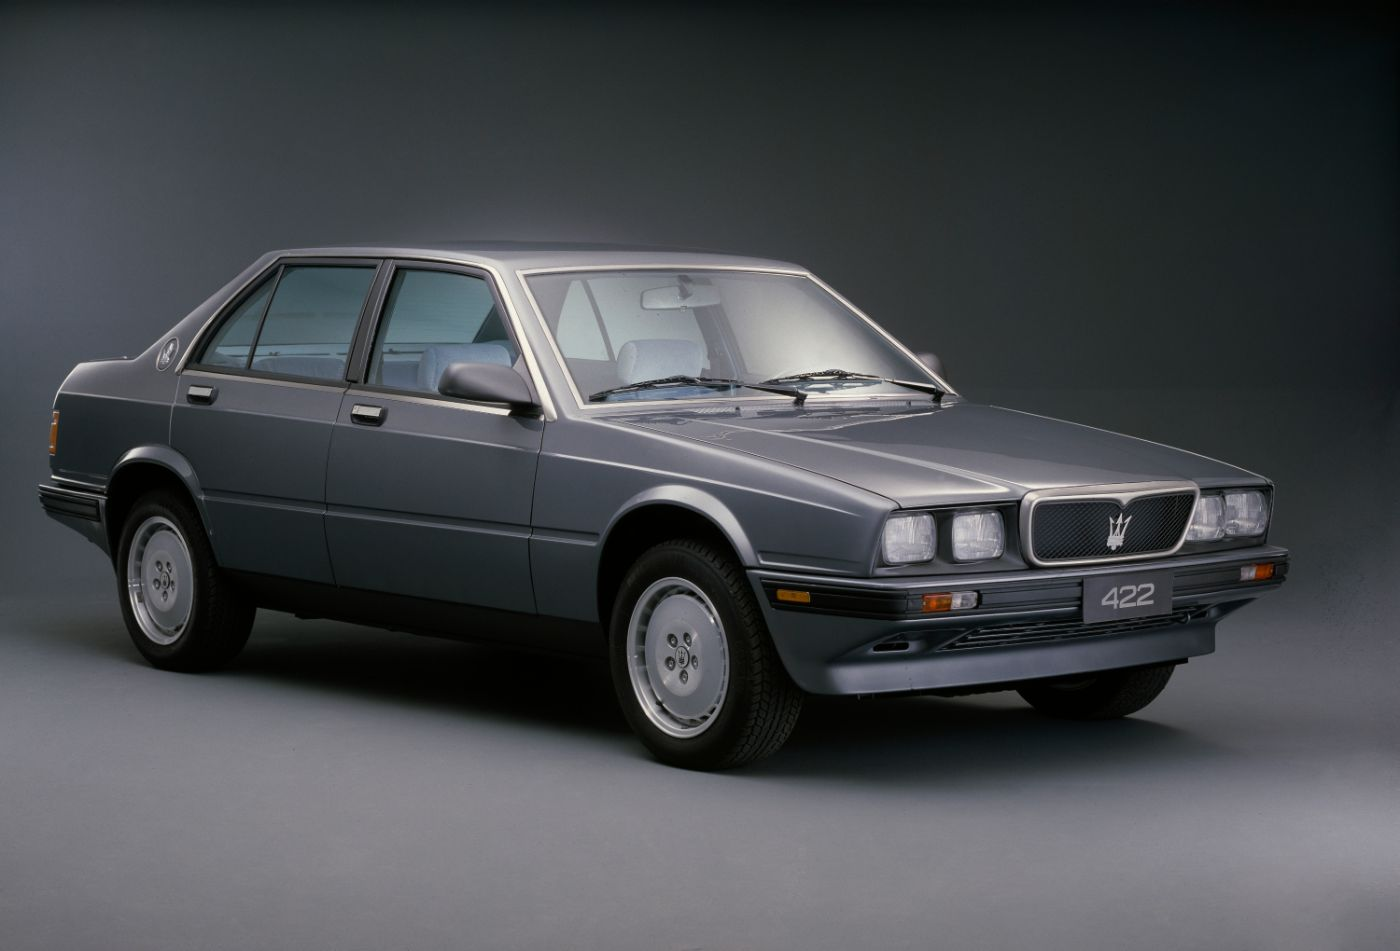 1988 Maserati 422 Biturbo - exterior view of the classic car model